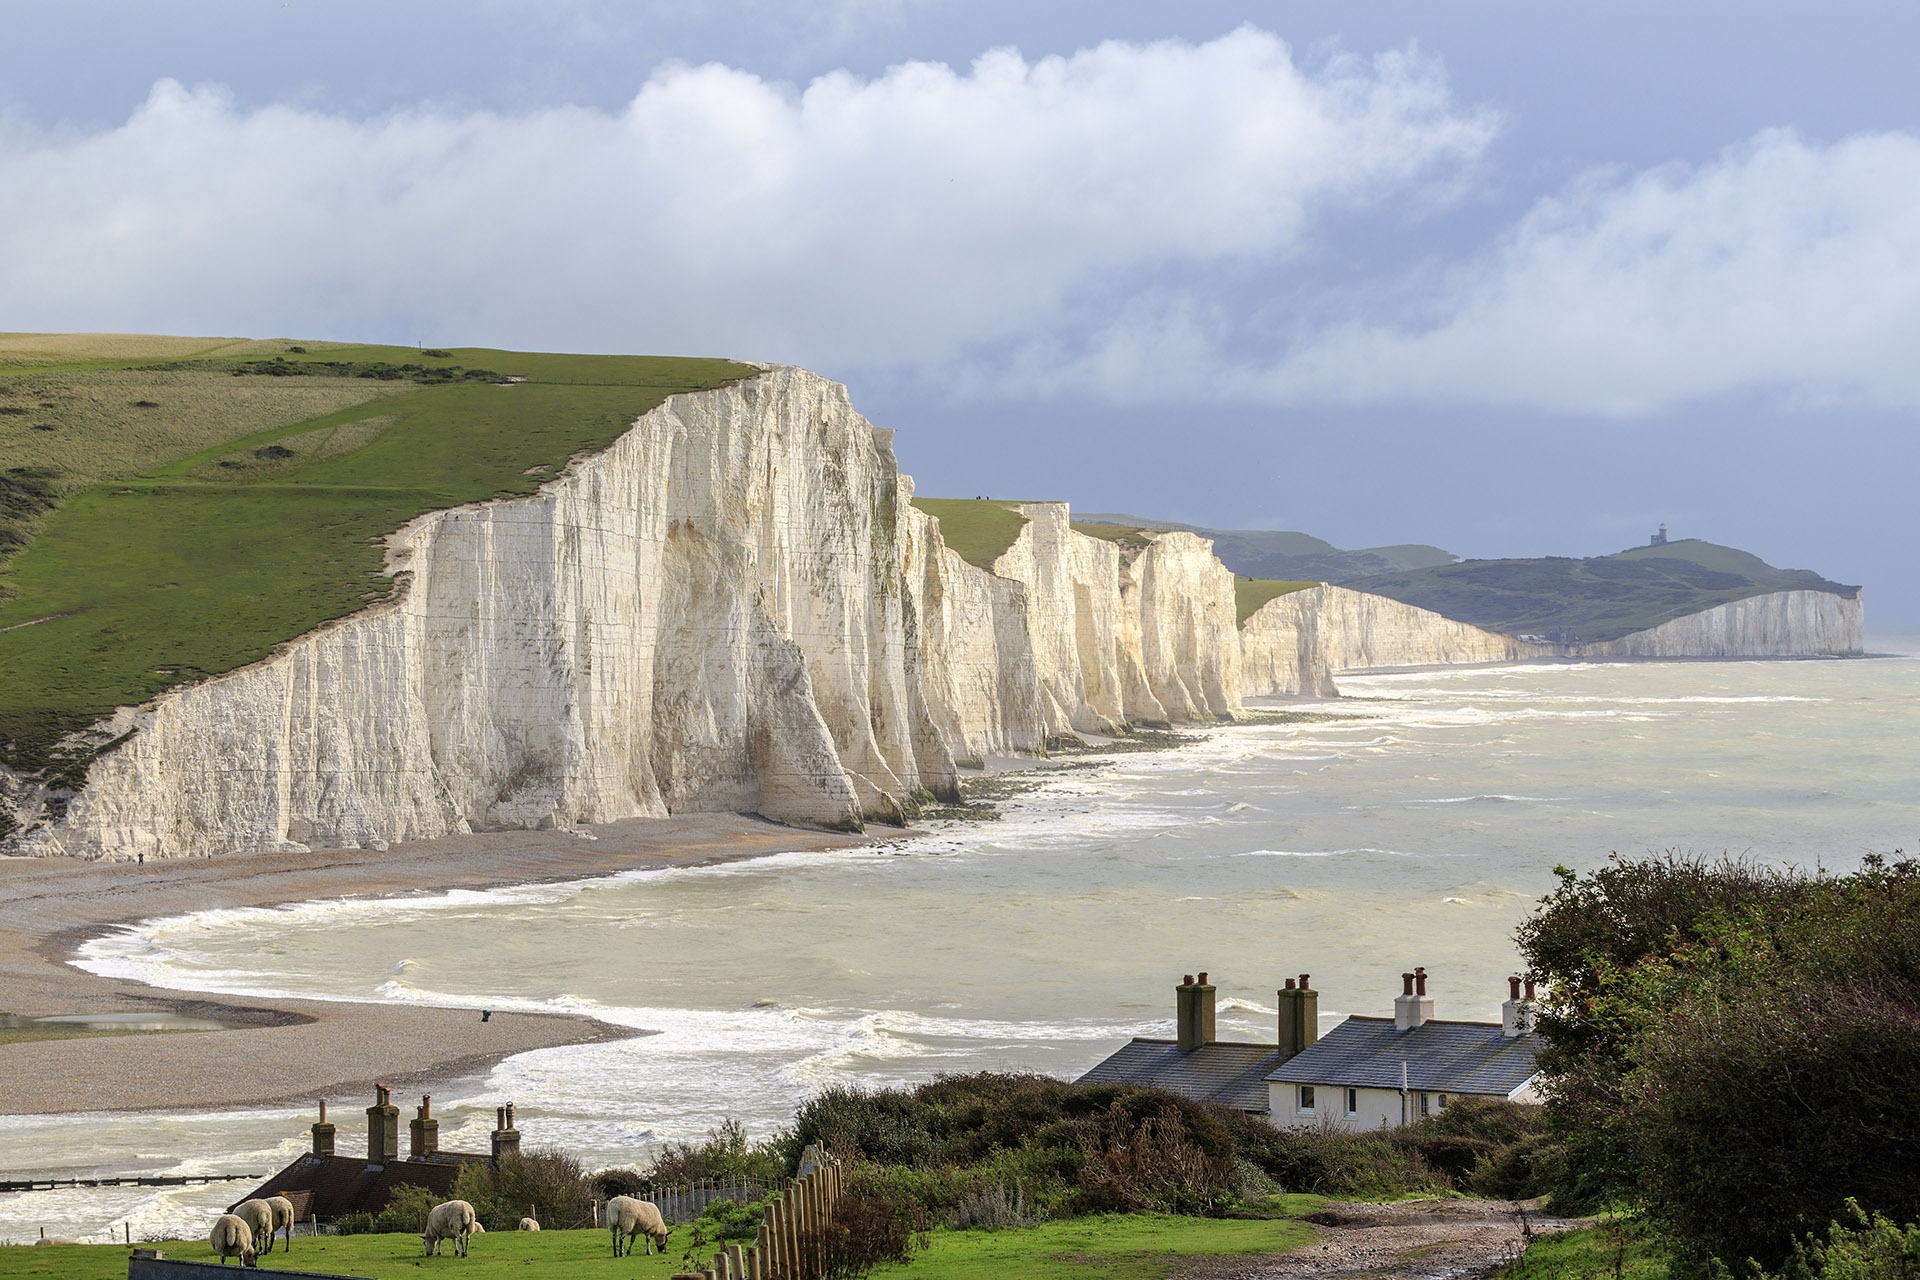 Green grass-covered snow white cliffs next to a beach and ocean